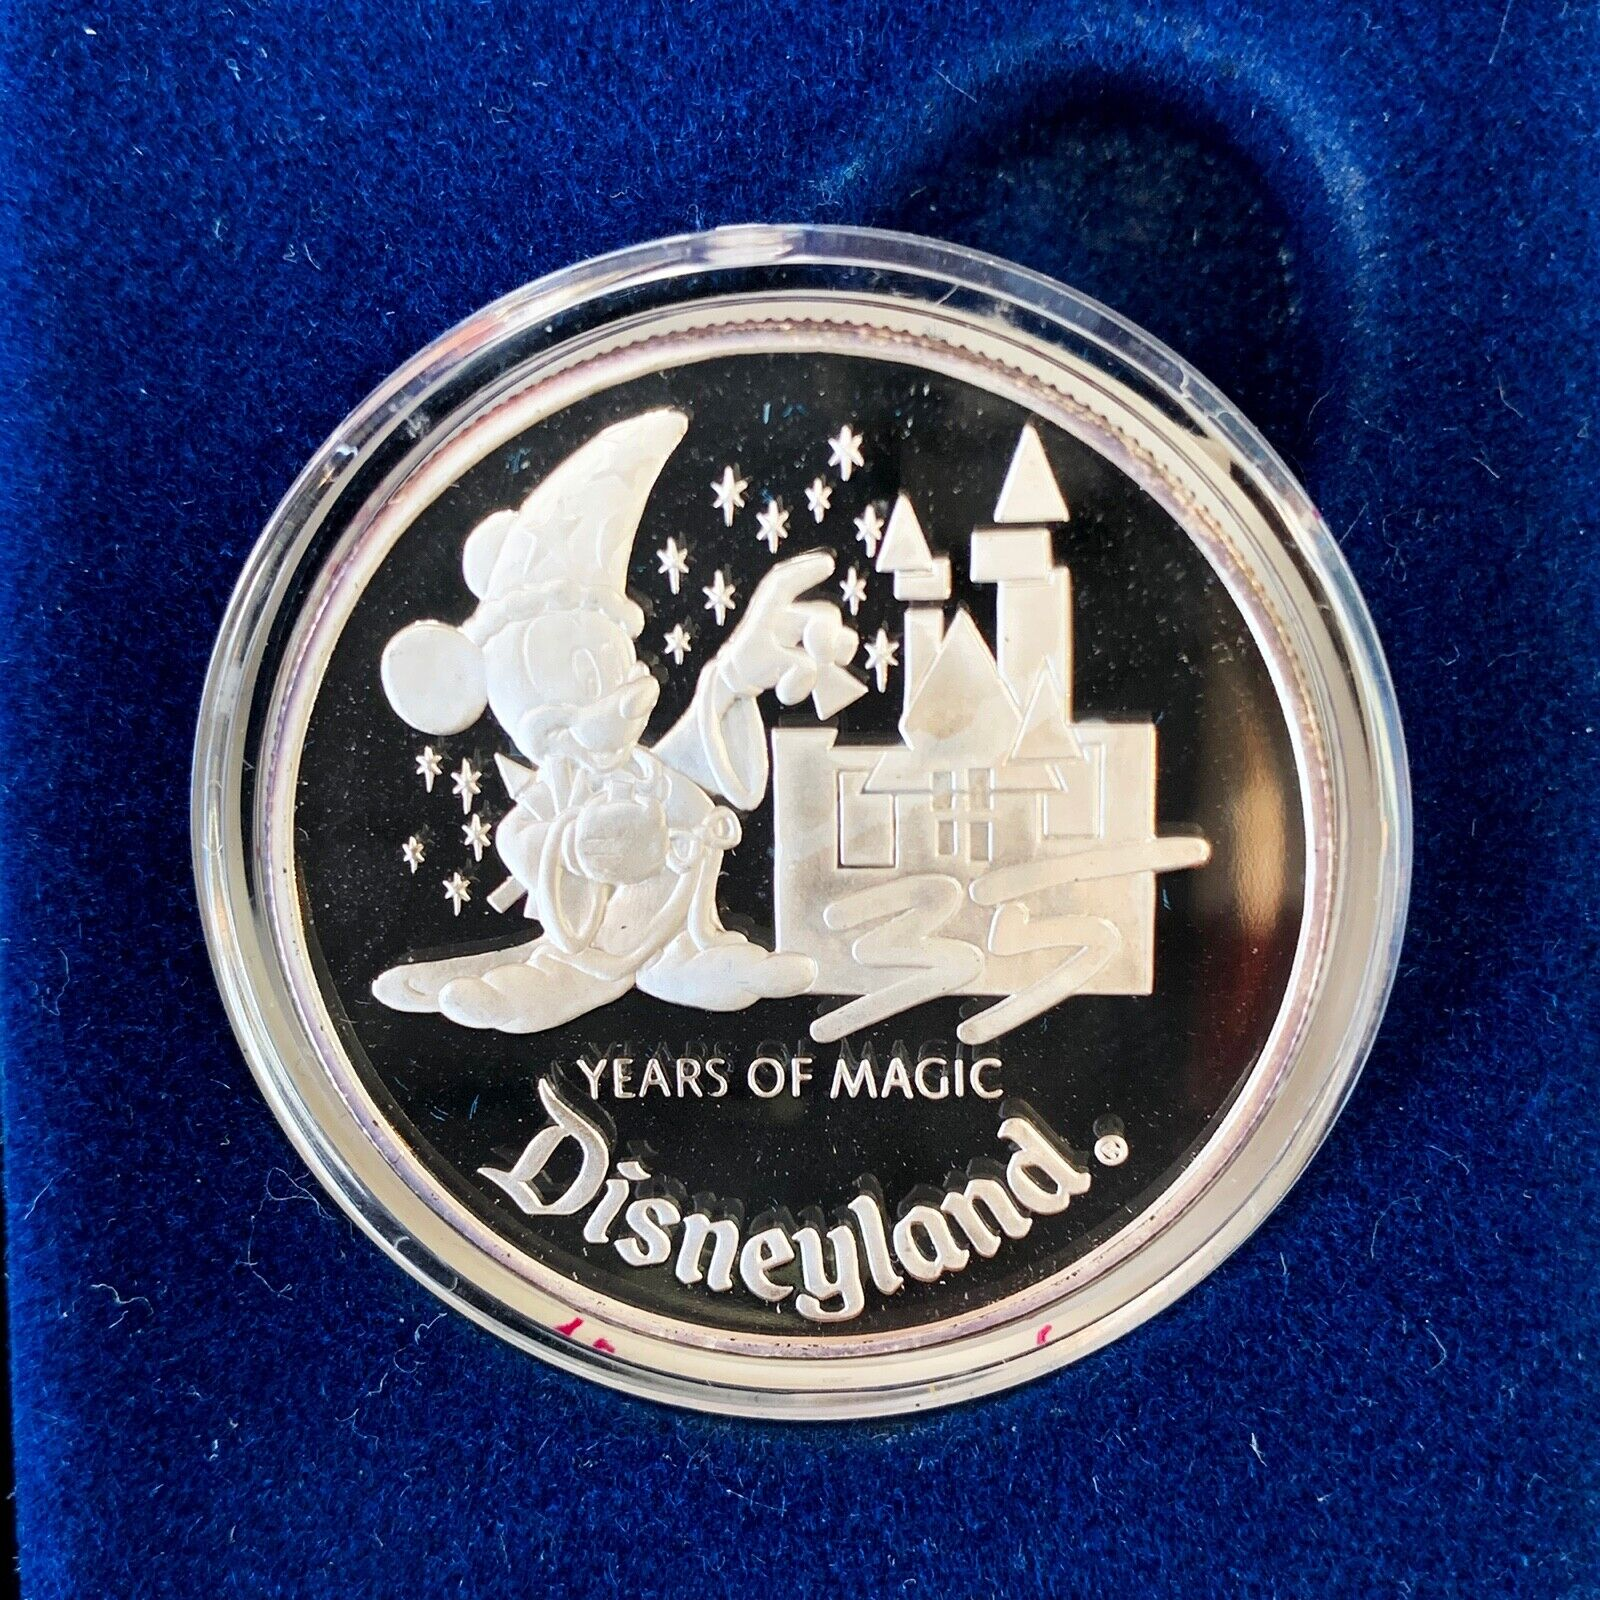 1990 Disneyland 35 Years Of Magic 1 Troy Ounce .999 Fine Silver Coin With COA - $49.00